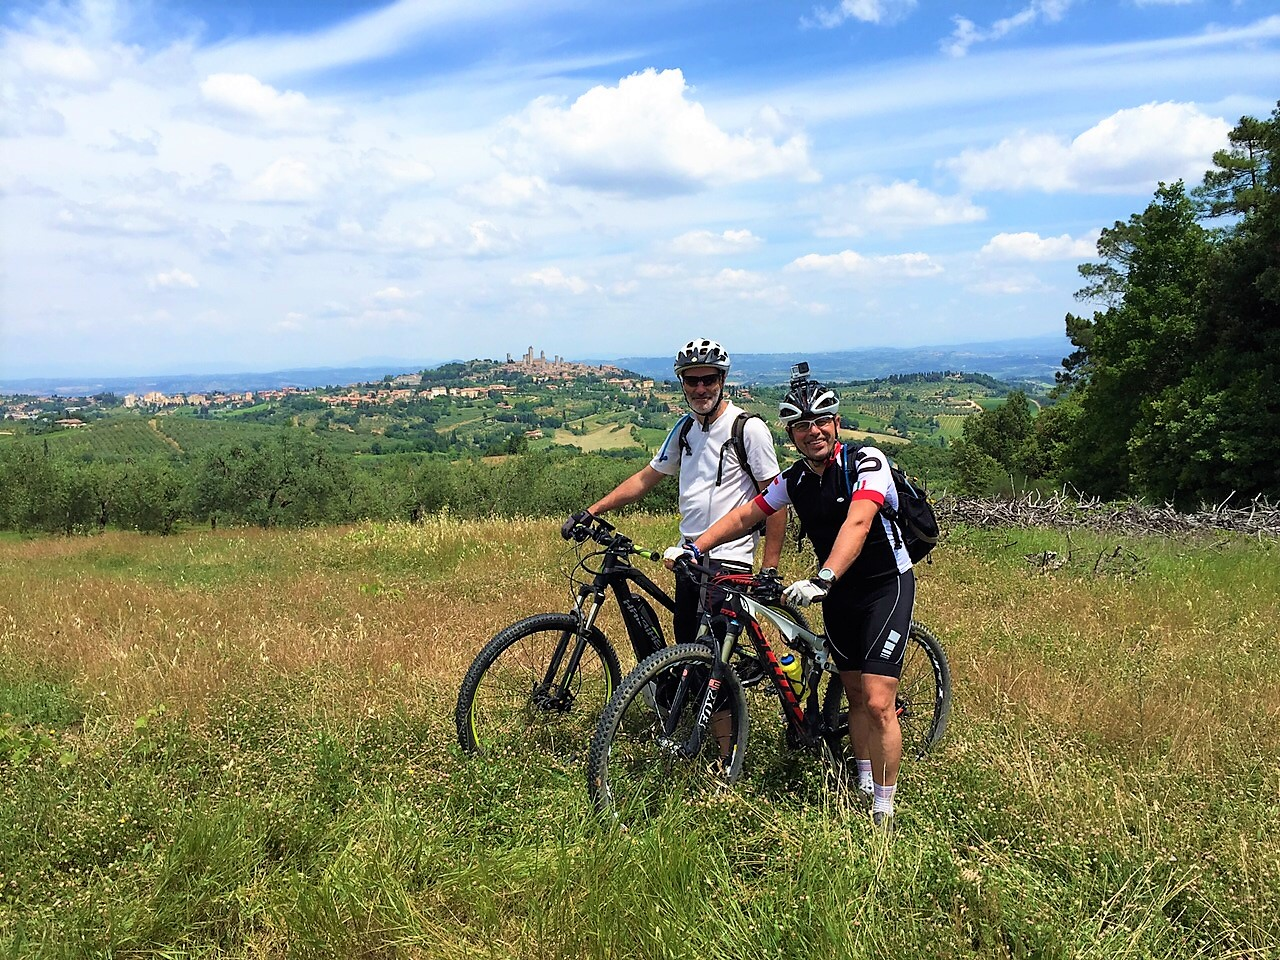 San Gimignano e-bike mountain bike tour view over the town